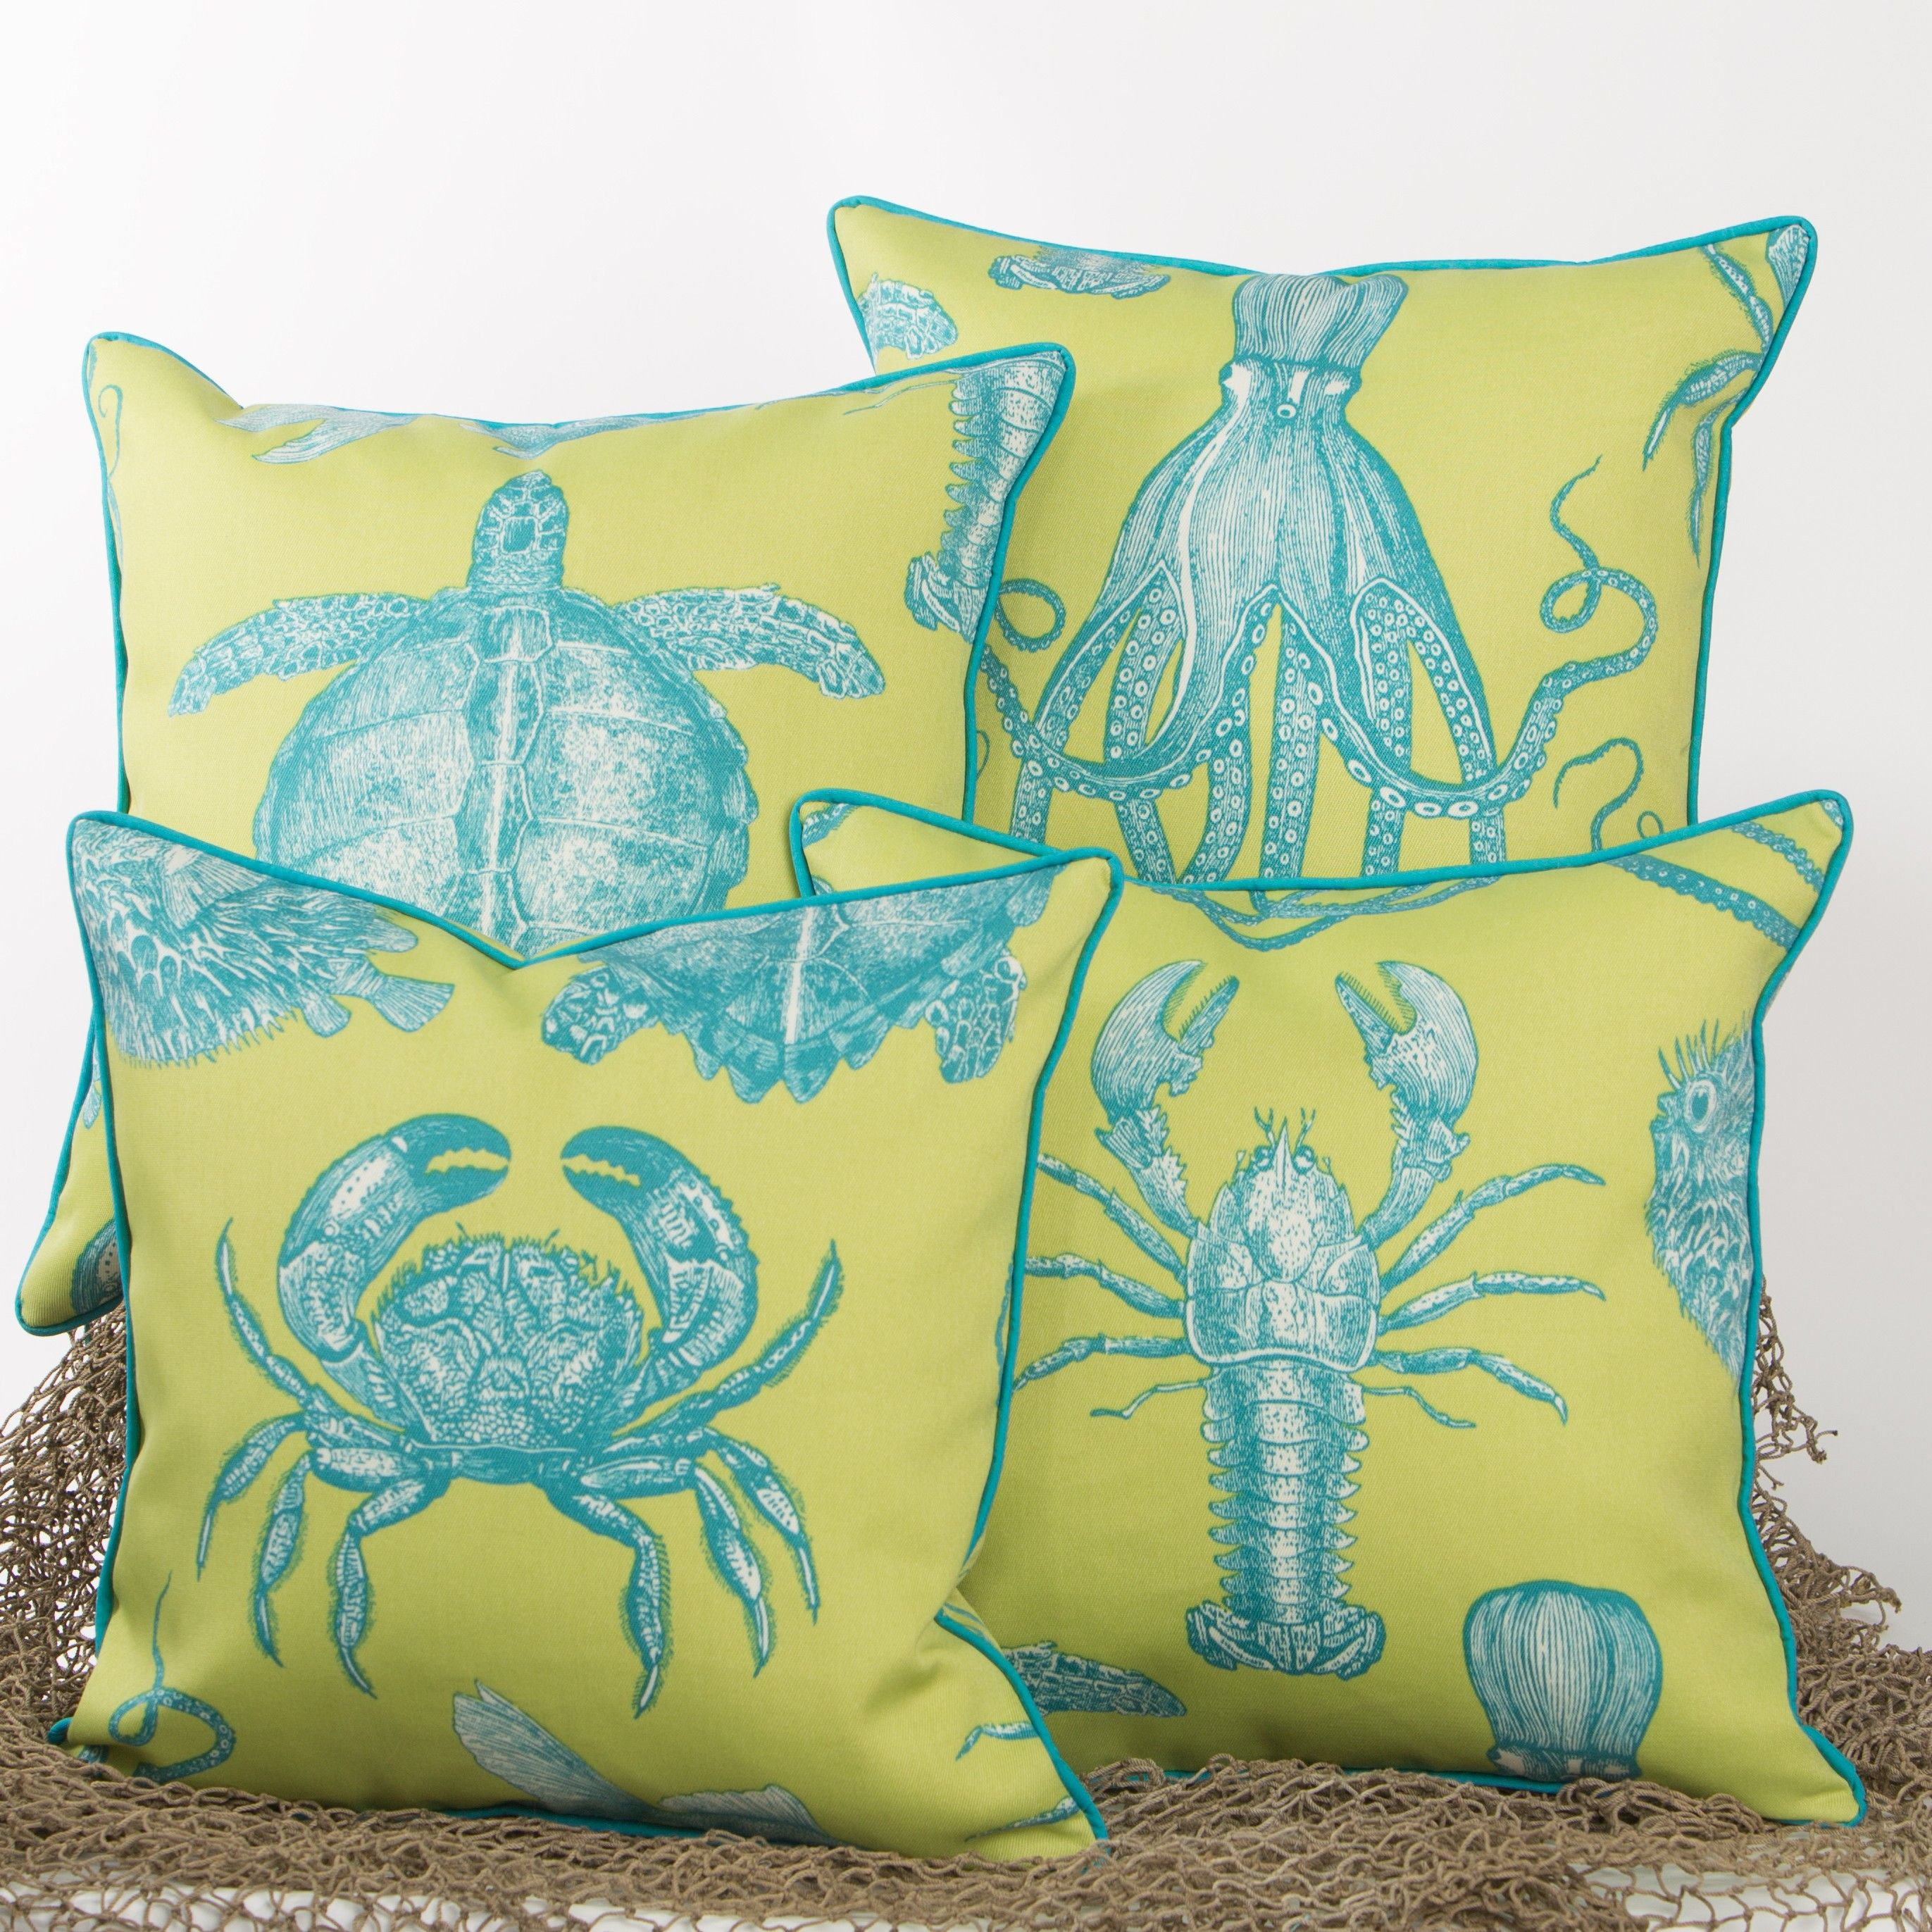 easy doodles stitches beach pillows pillow diy